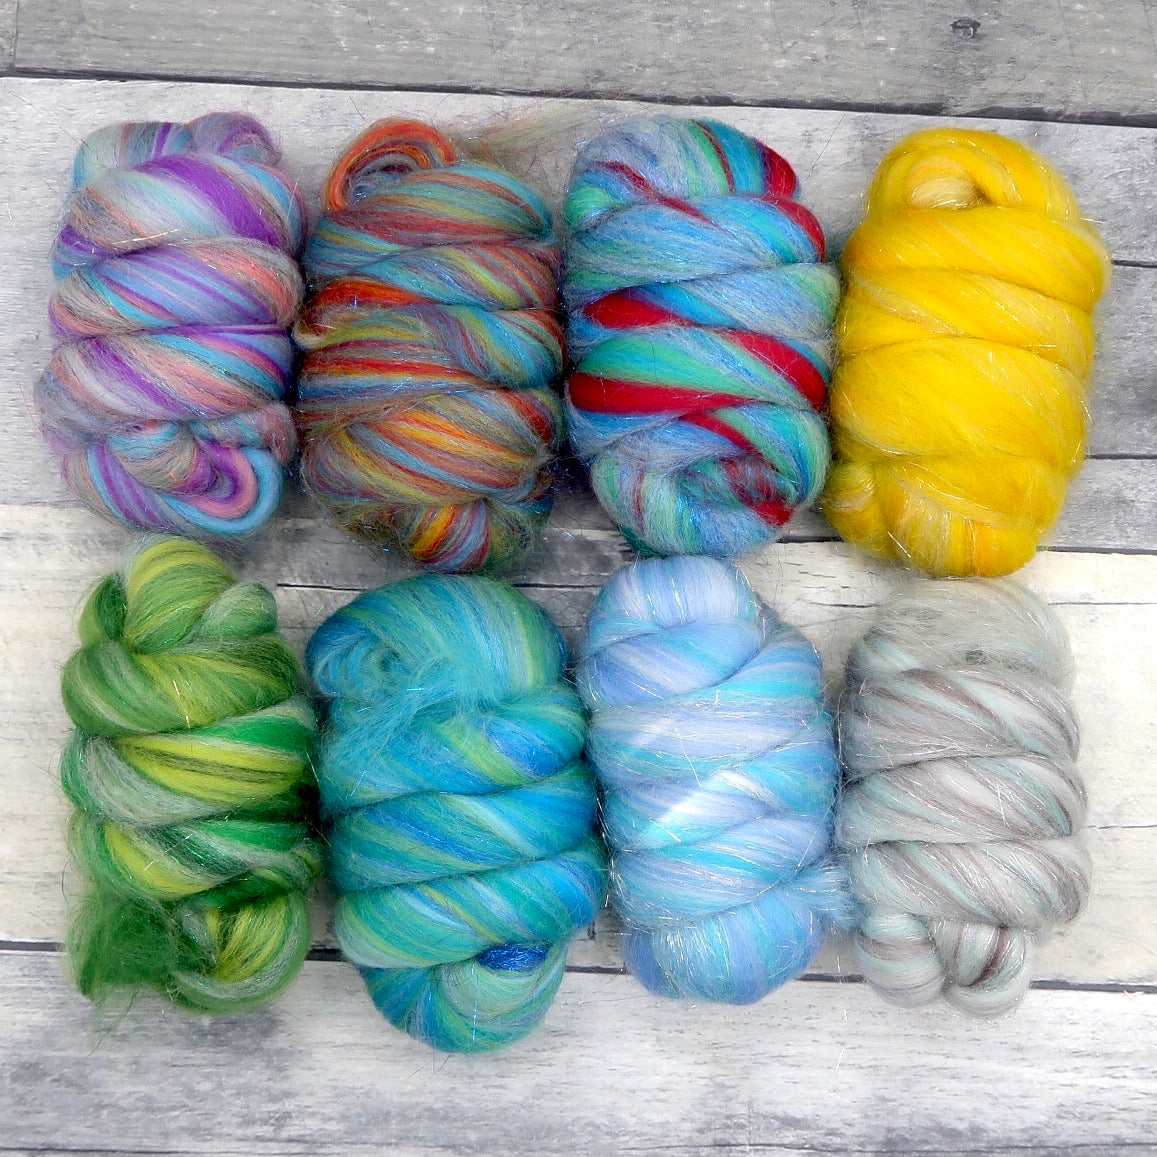 Twinkly Bits, colorful Merino / Stellina Blend, 200g